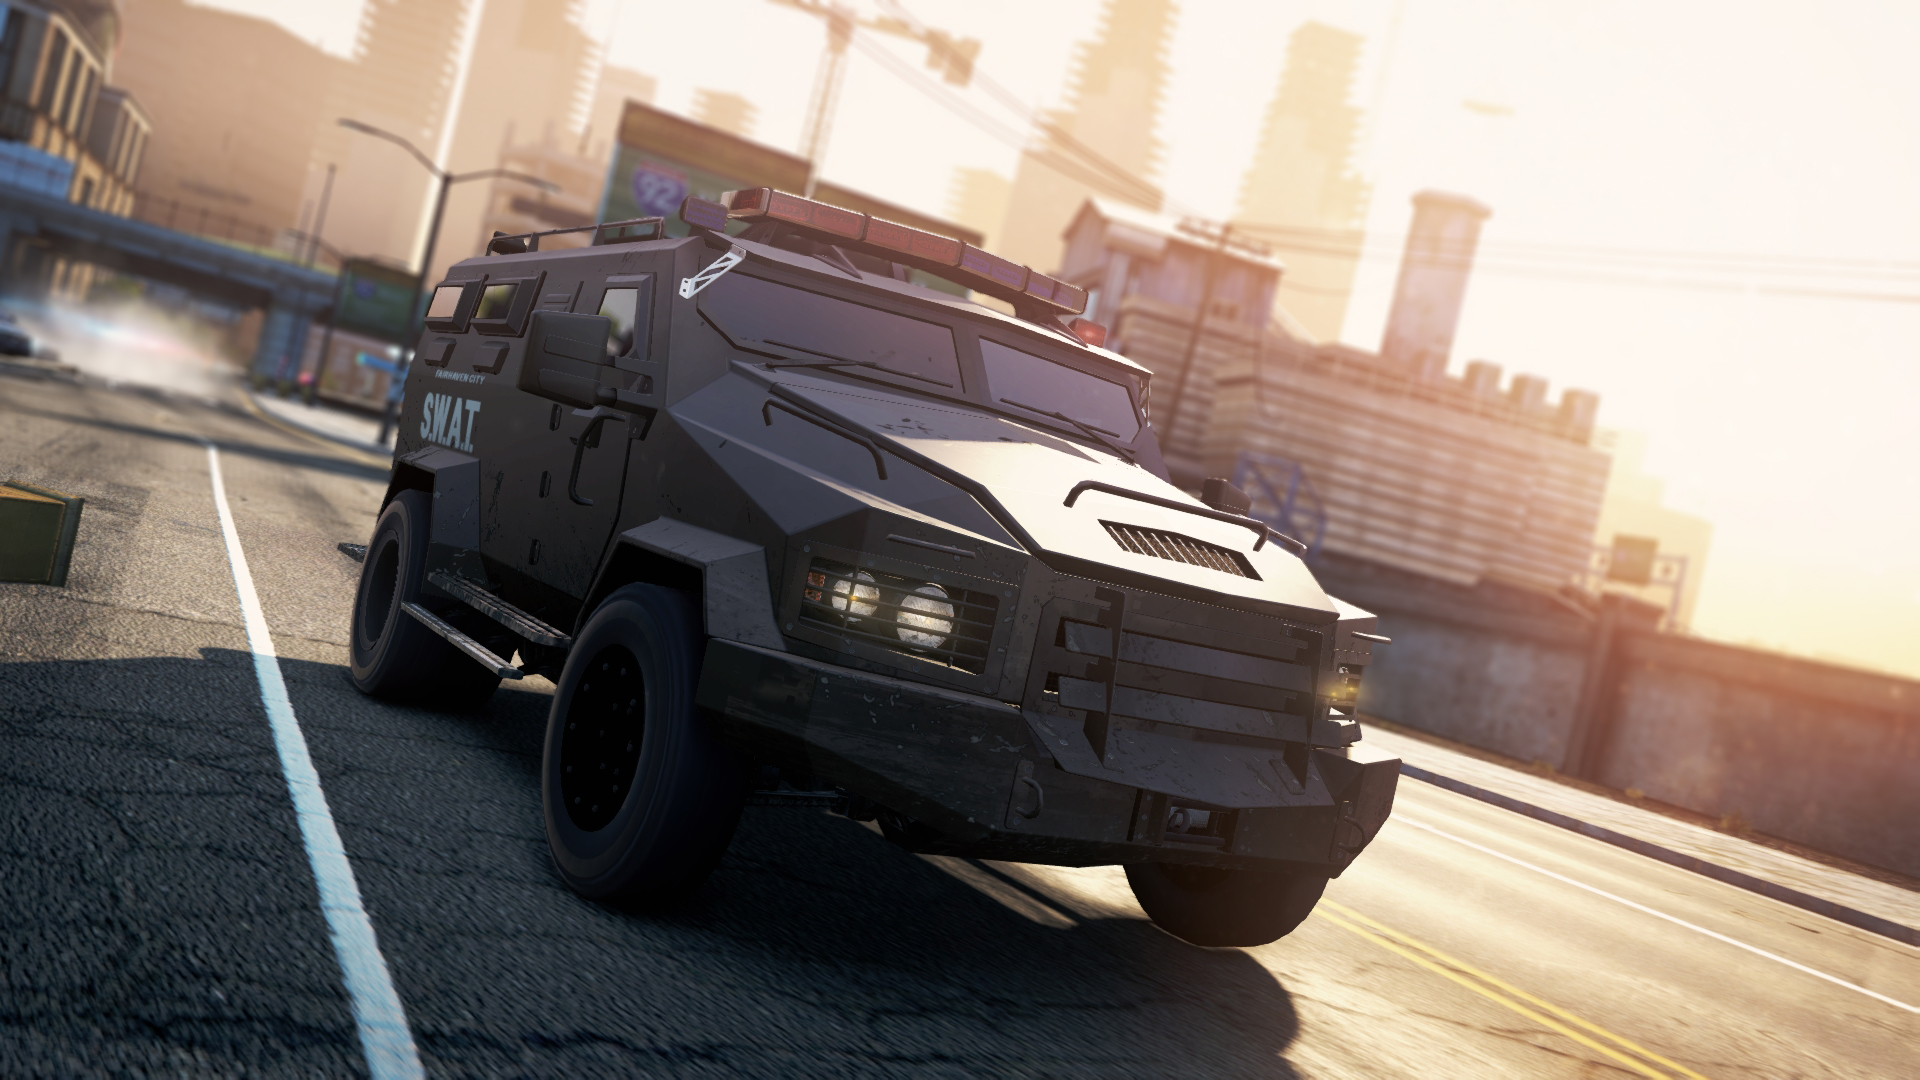 Don Miller Dodge >> SWAT Truck | Need for Speed Wiki | FANDOM powered by Wikia